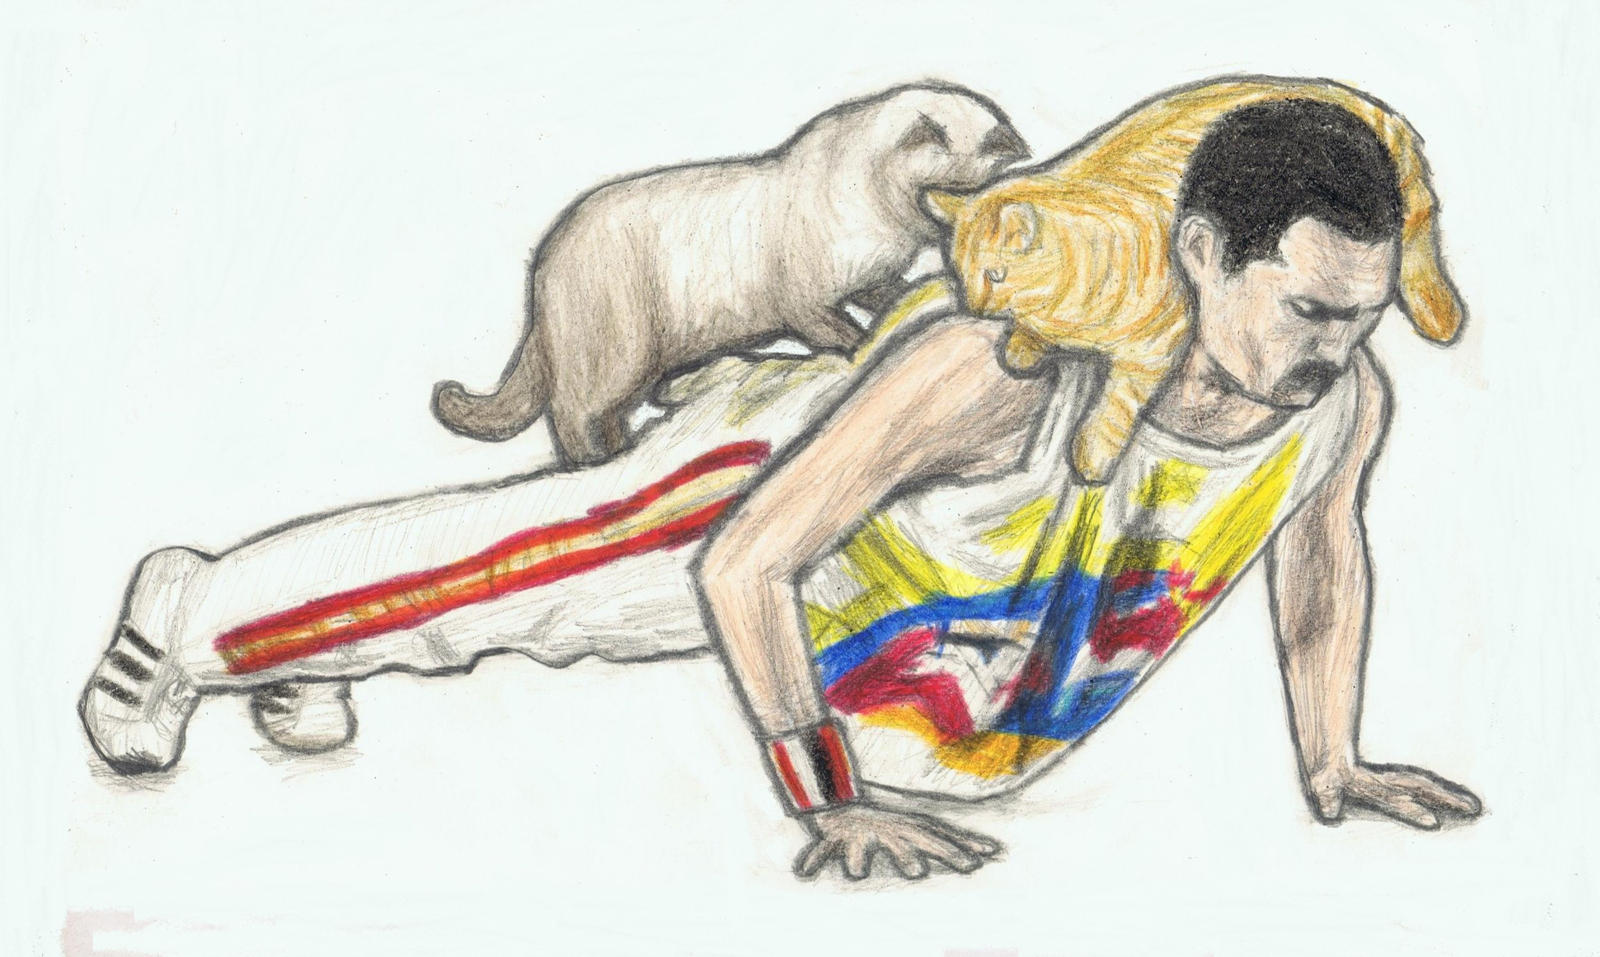 Freddie doing pushups with his cats on his back by gagambo